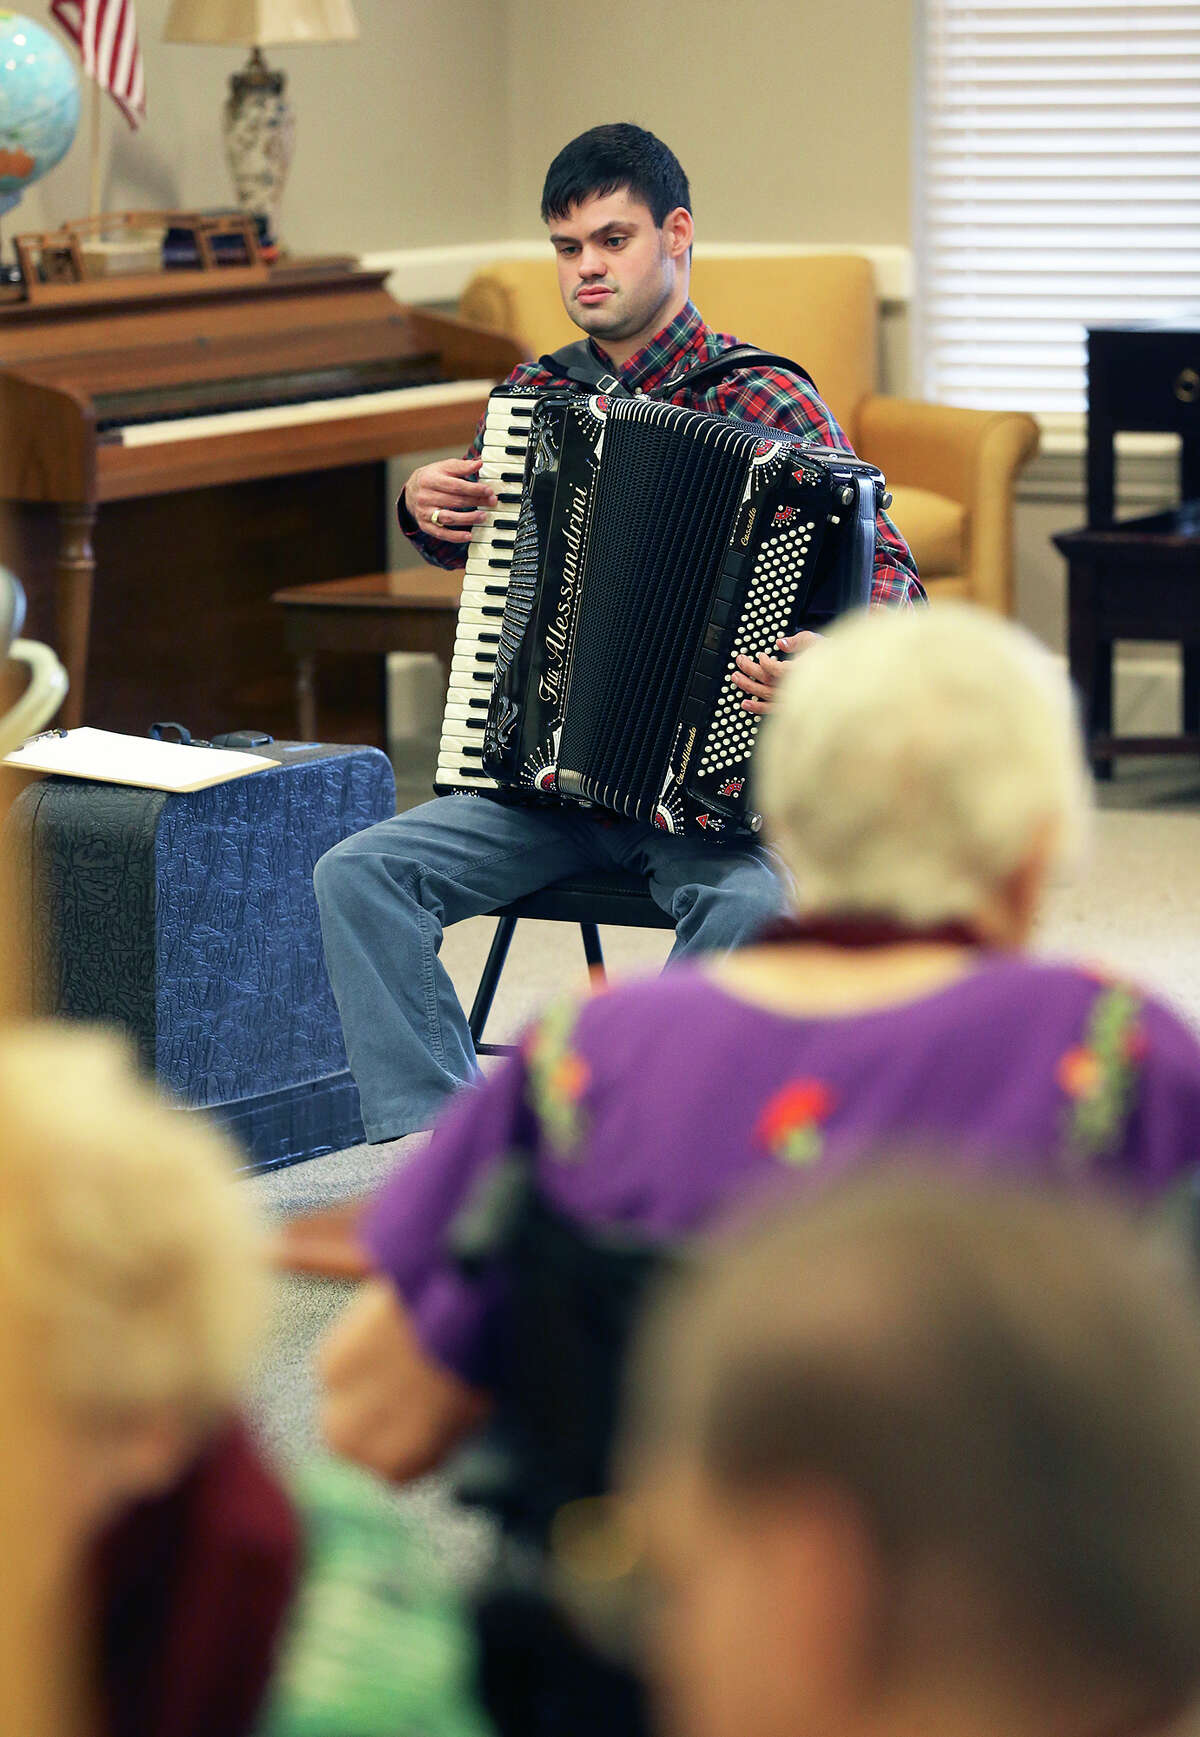 John McDonald, who has the developmental disorder Asperger's syndrome, which affects his ability to socialize and communicate effectively, performs a song on the accordion at the Kendall House Retirement Home in Boerne on Wednesday. McDonald is a good example of what autism experts advise all parents of autistic kids to do: Identify and cultivate their child's special interests and talents as early as possible to improve the odds they'll be able to make their own way in the world.